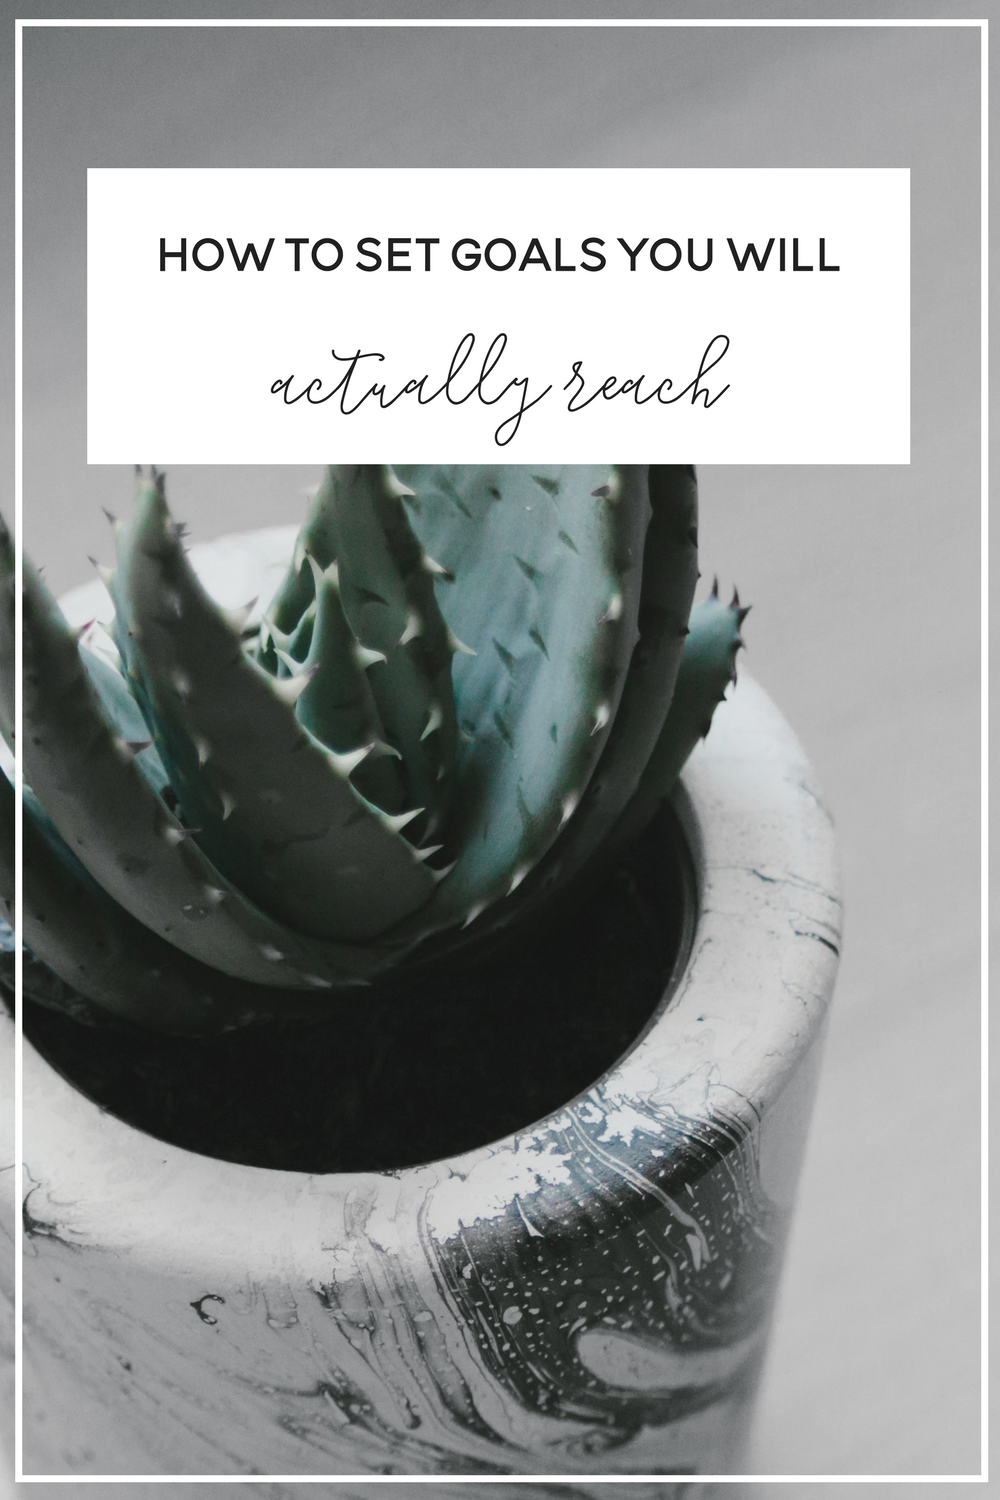 How to set Goals you will Actually Reach - How many times do you set new year resolutions that fall short by February? How many times have you read blog posts about hitting your goals? Ouch. I know. Listen, I was a cereal goal-setter-then-goal-forgetter-or-giver-upper before last year. I had only set a couple goals because they were super short-term and easy to hit. Never had I actually reached all my new year's resolutions UNTIL LAST YEAR. So what changed? That's what we're going to talk about today.